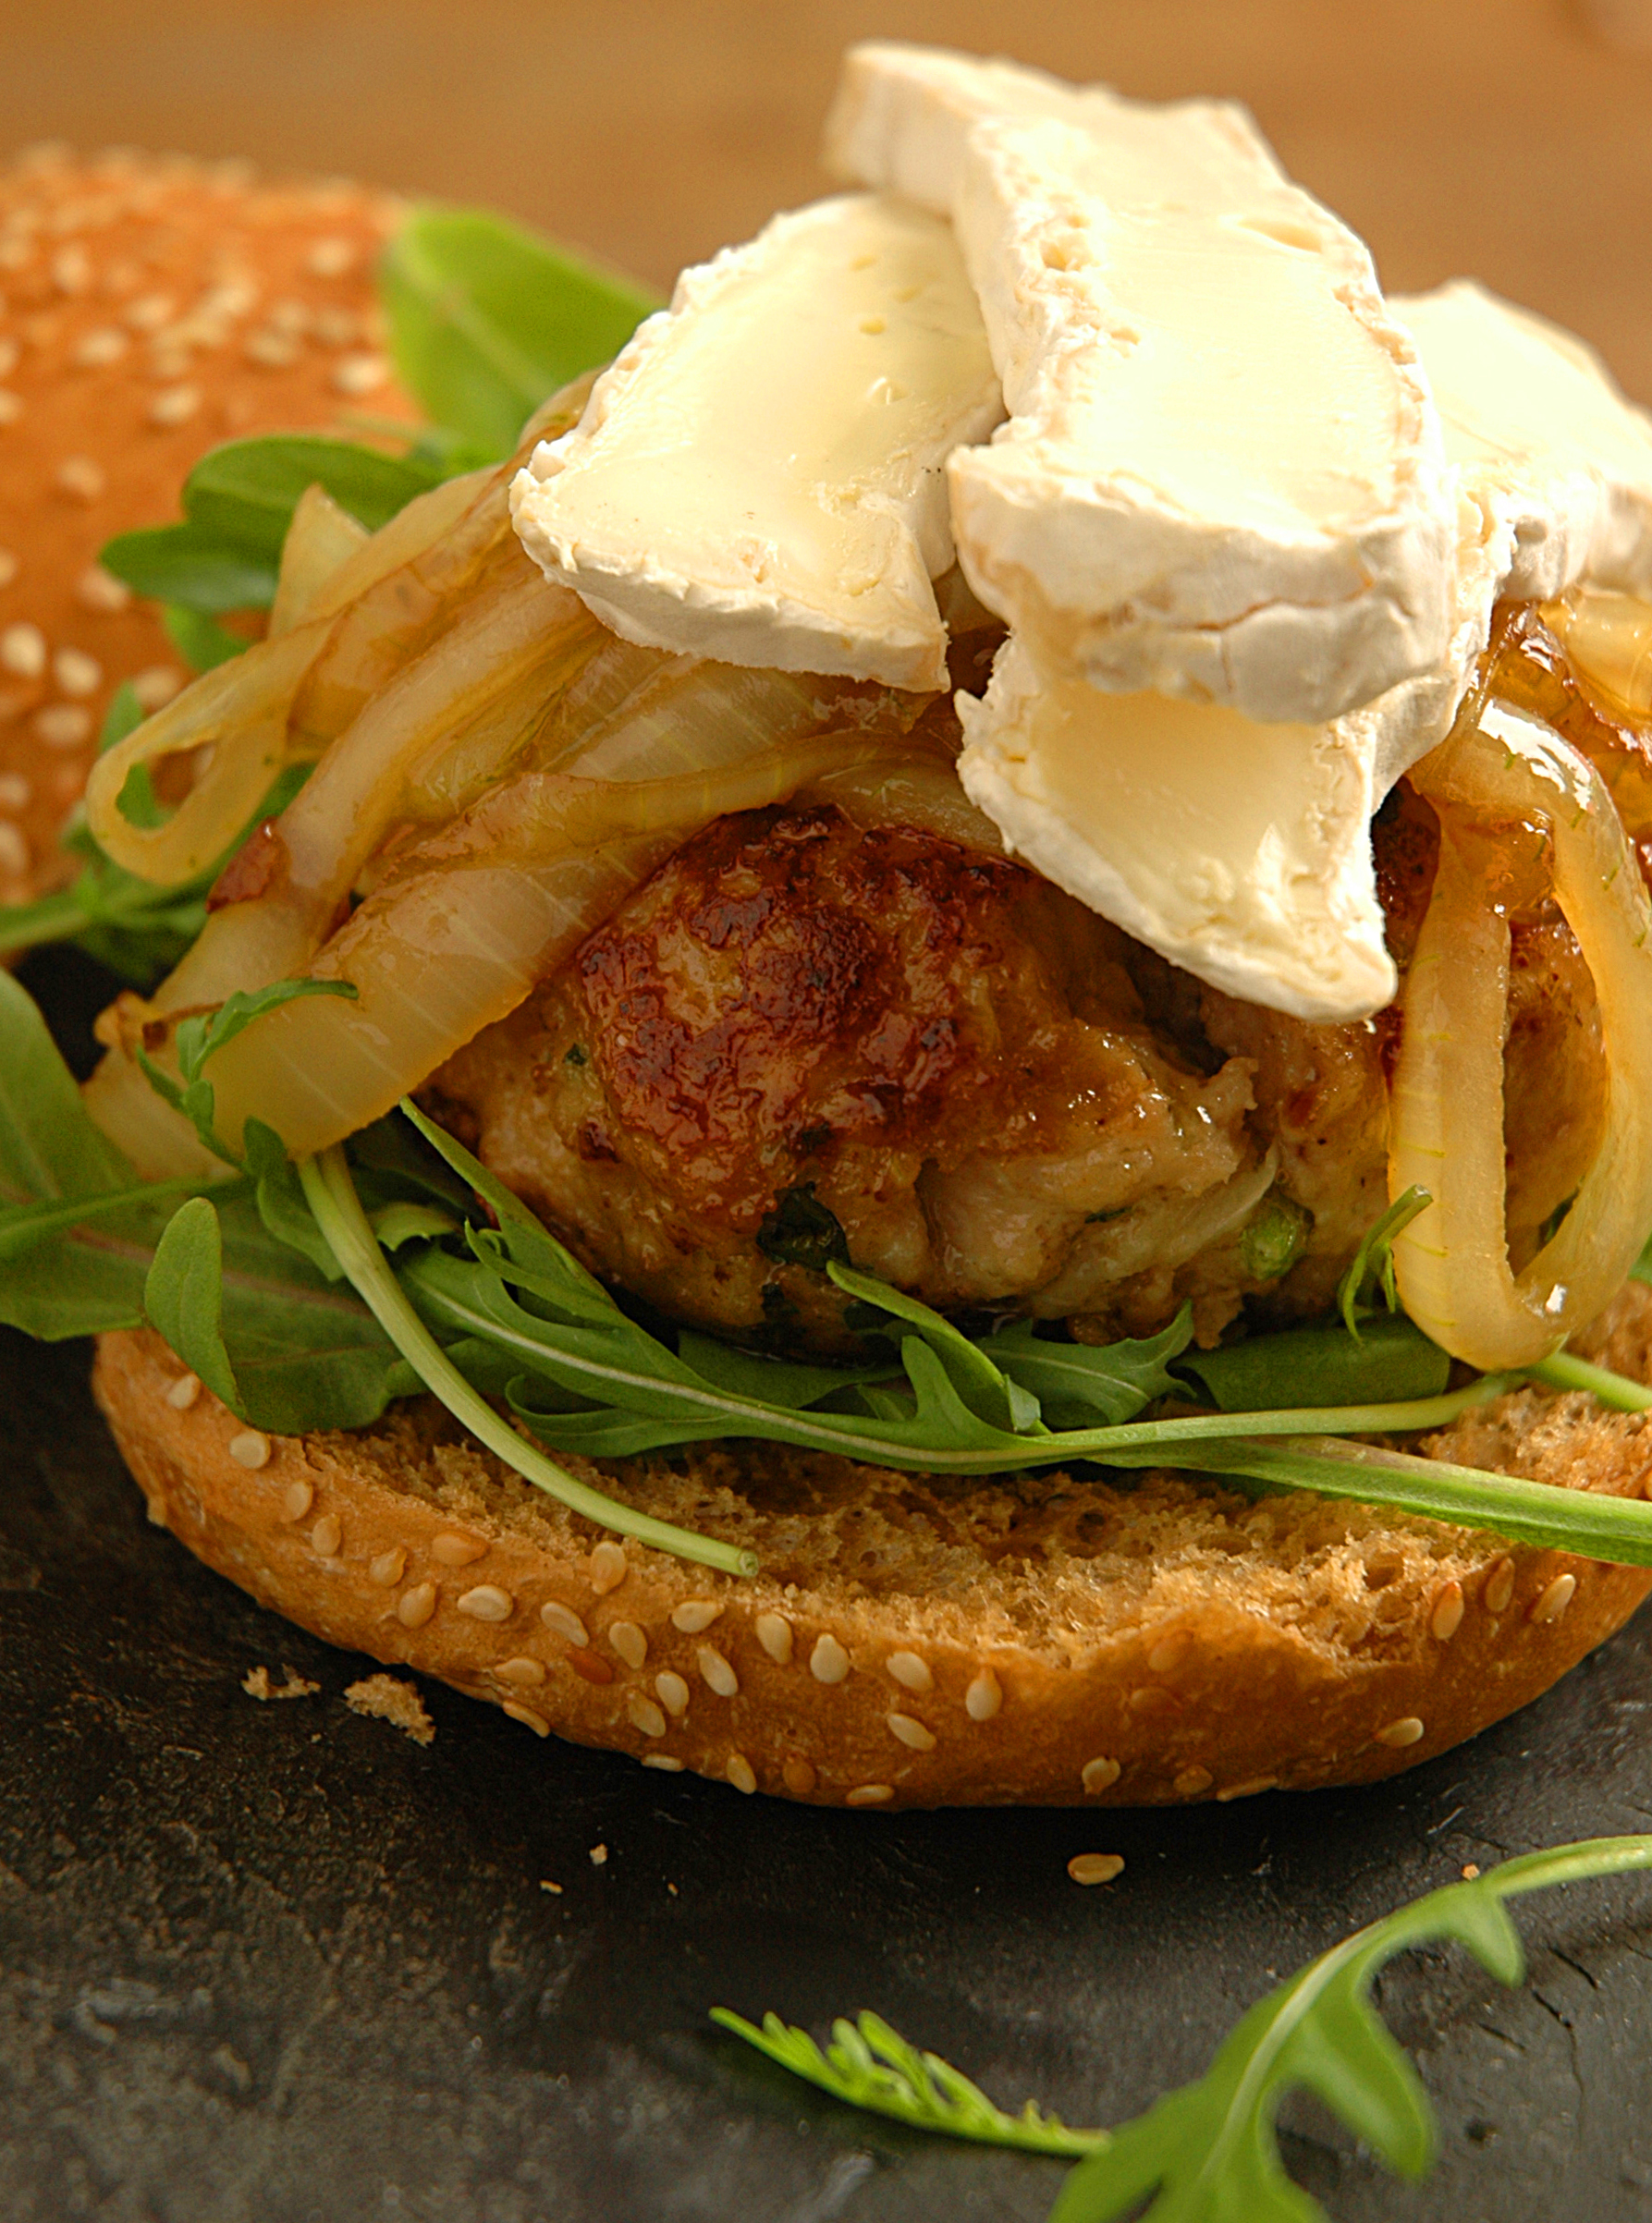 Pork and Apple Burgers – from Simple and Delicious by Alida Ryder